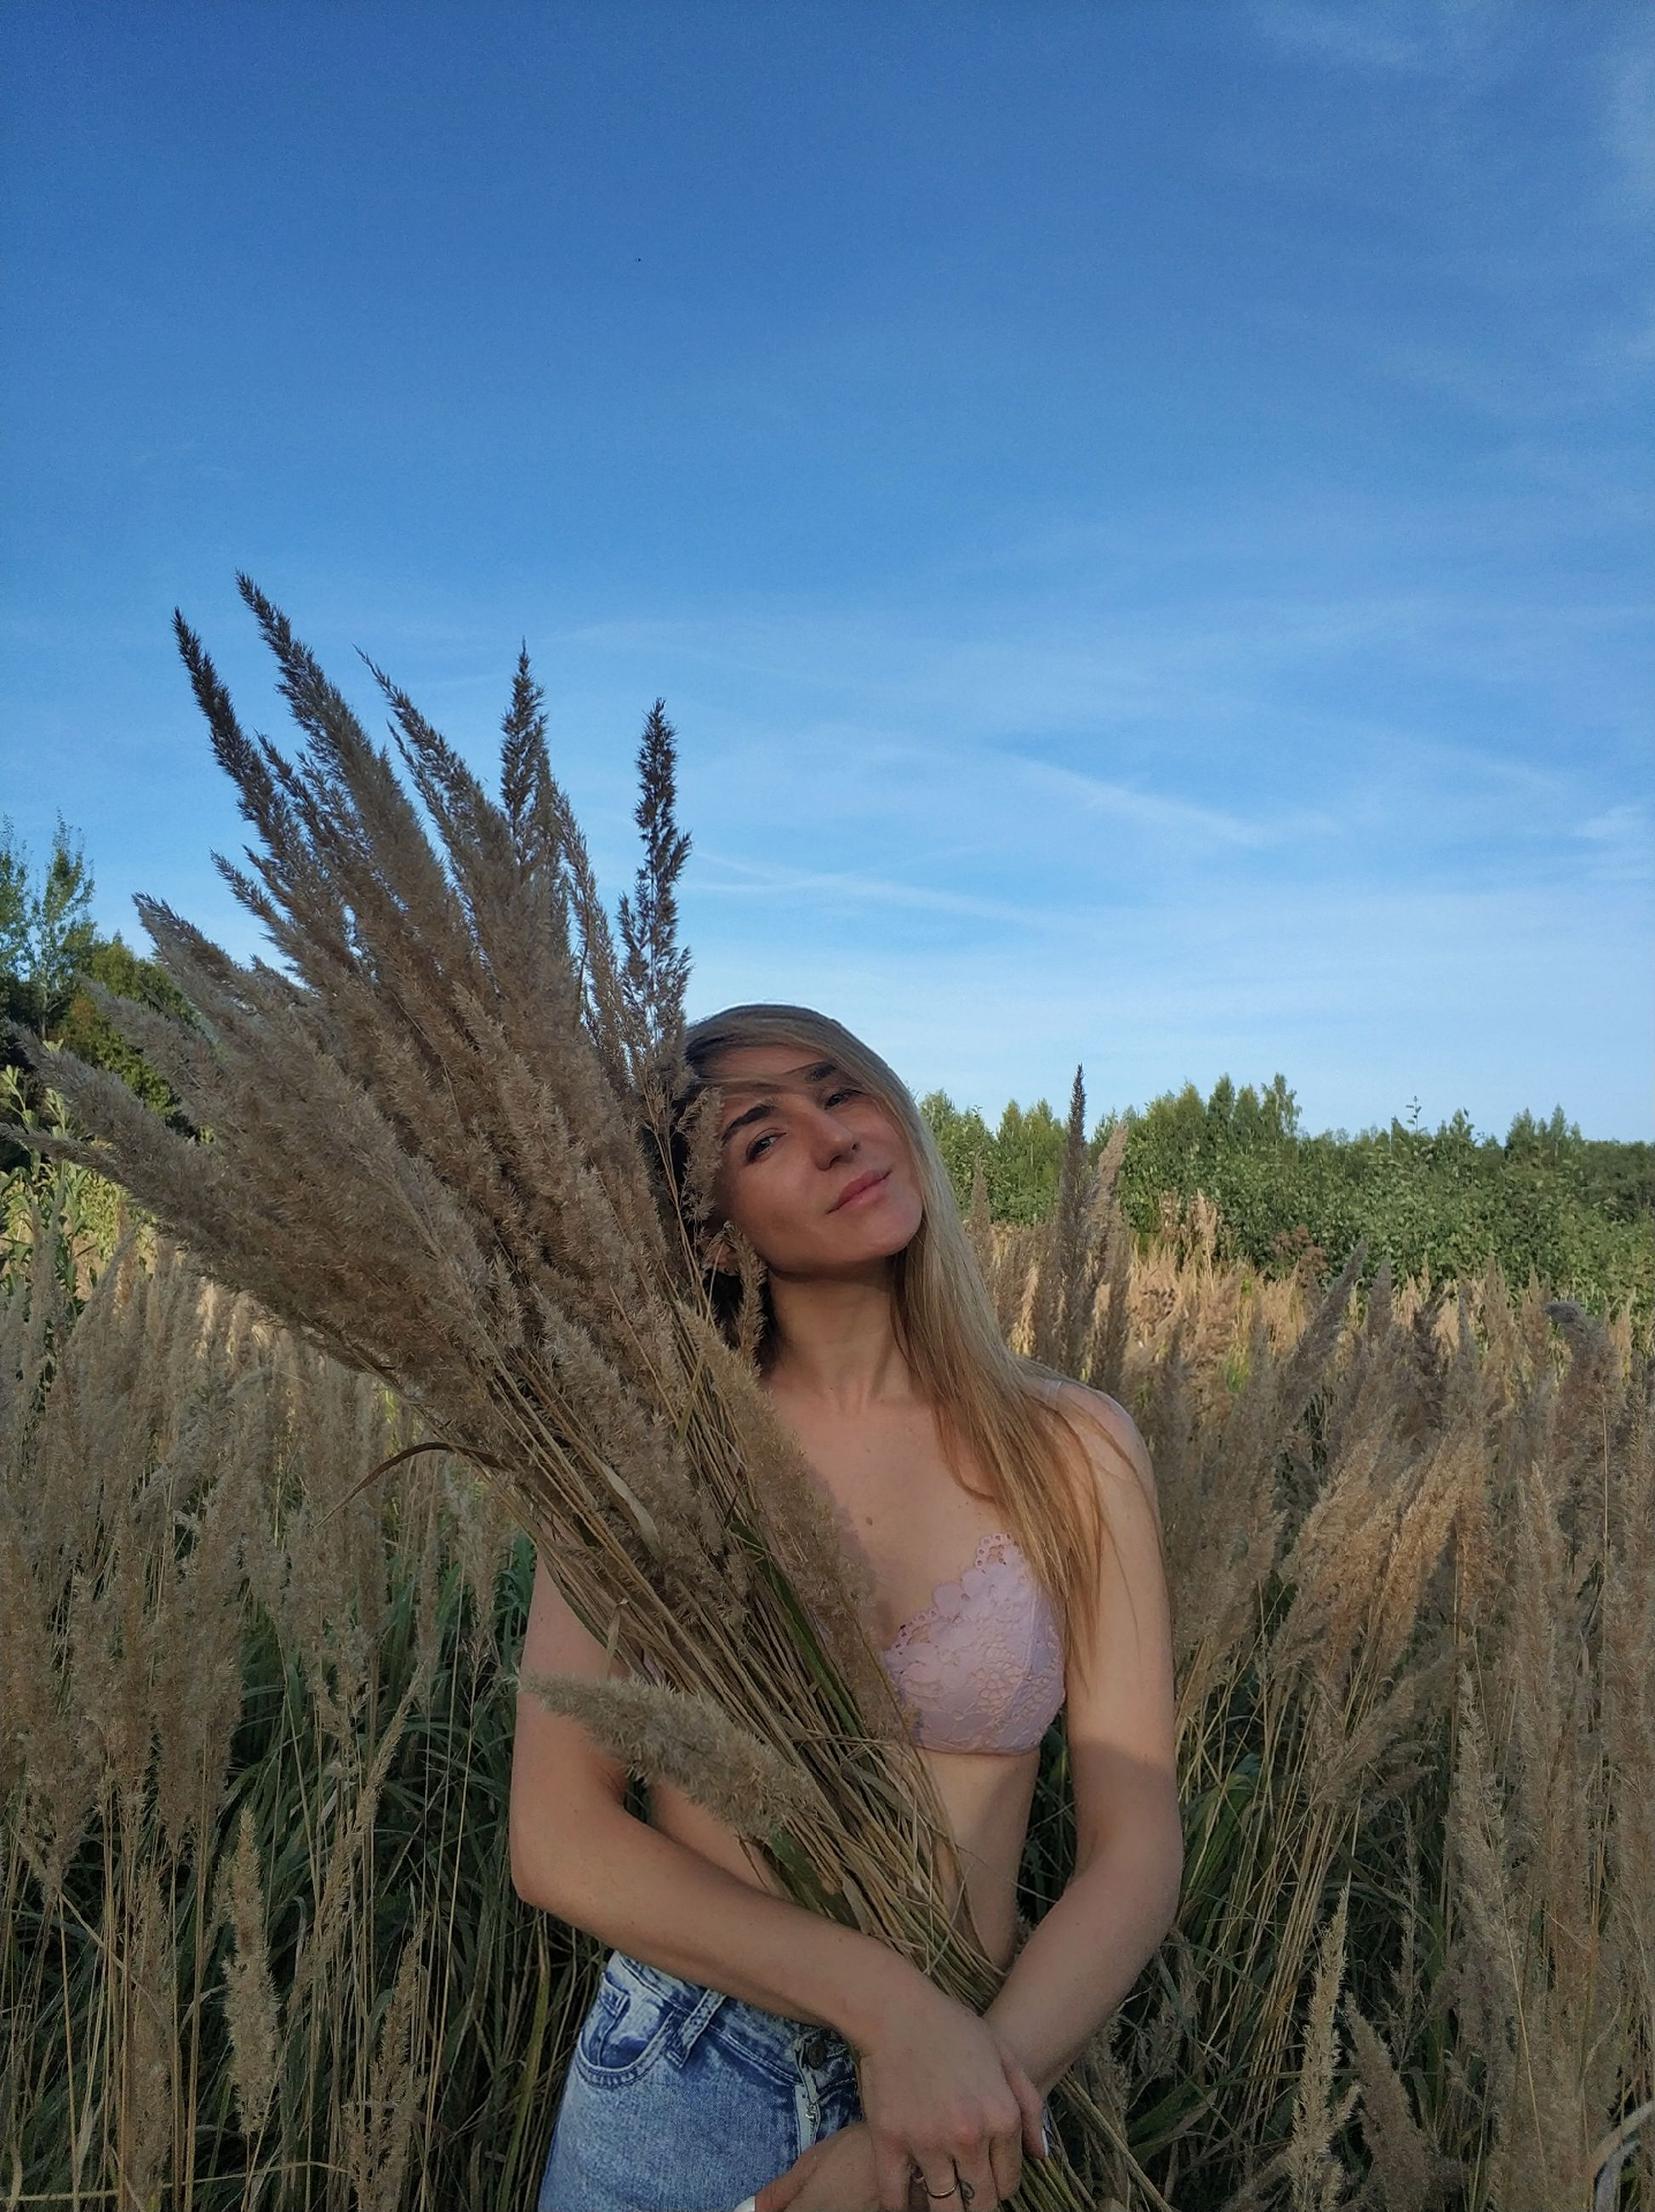 plant, sky, one person, young adult, young women, leisure activity, real people, lifestyles, field, standing, nature, land, day, growth, front view, casual clothing, three quarter length, smiling, beautiful woman, hairstyle, hair, outdoors